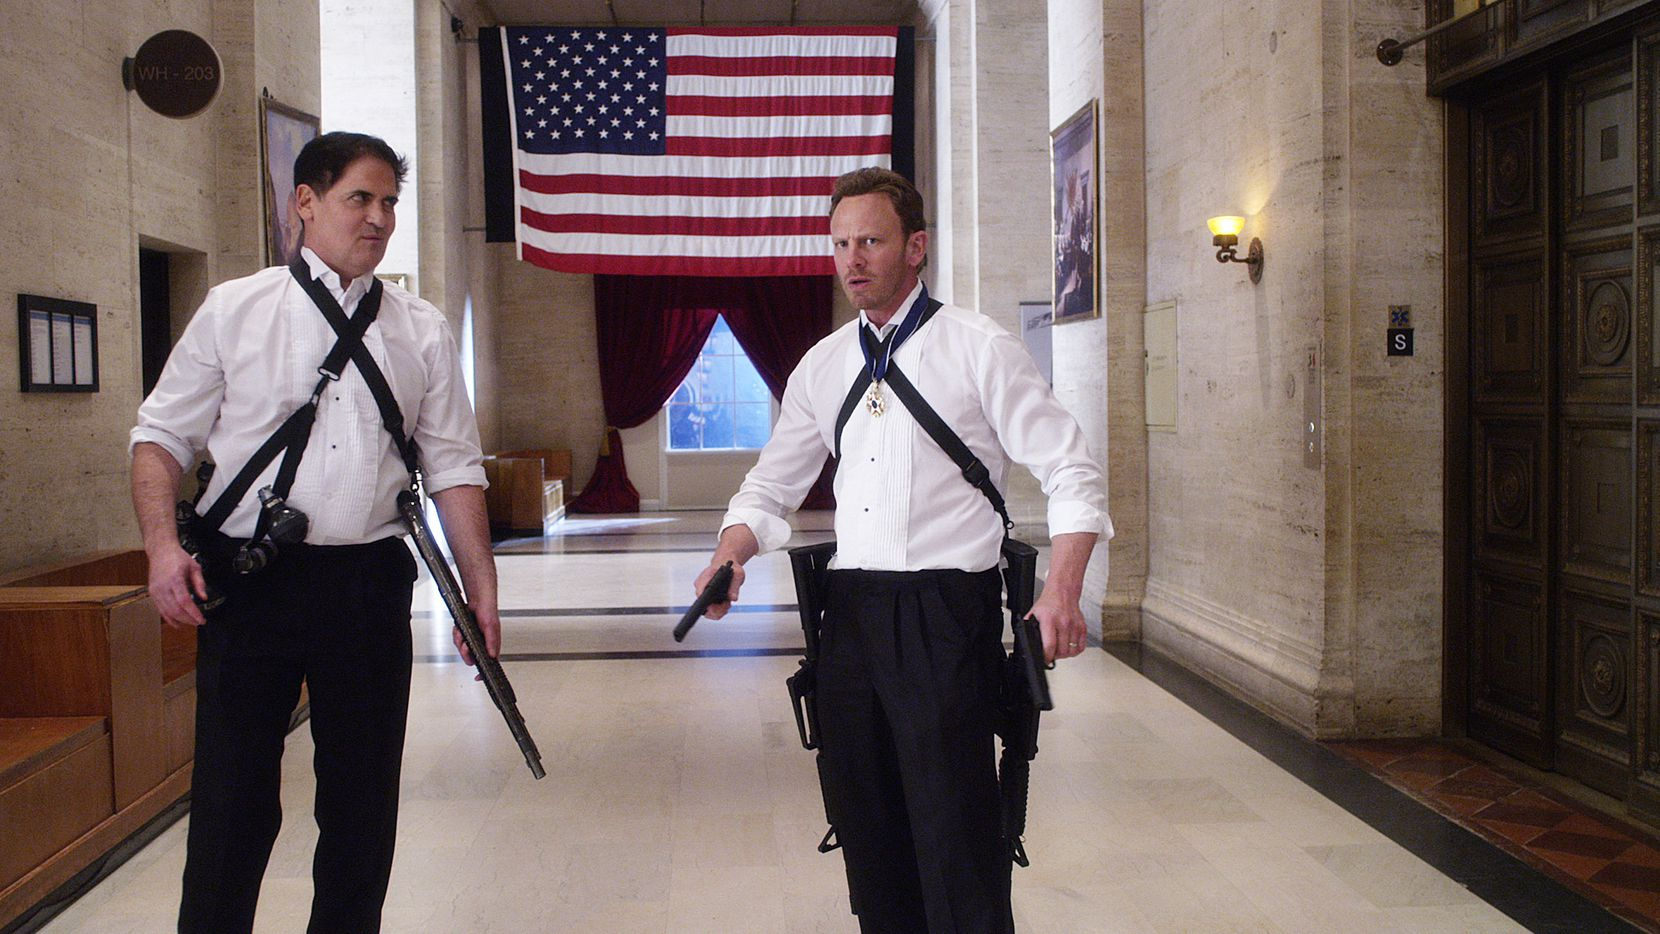 Mark Cuban (as U.S. President Marcus Robbins) and Ian Ziering (Fin Shepard) are shark-hunting in the White House.